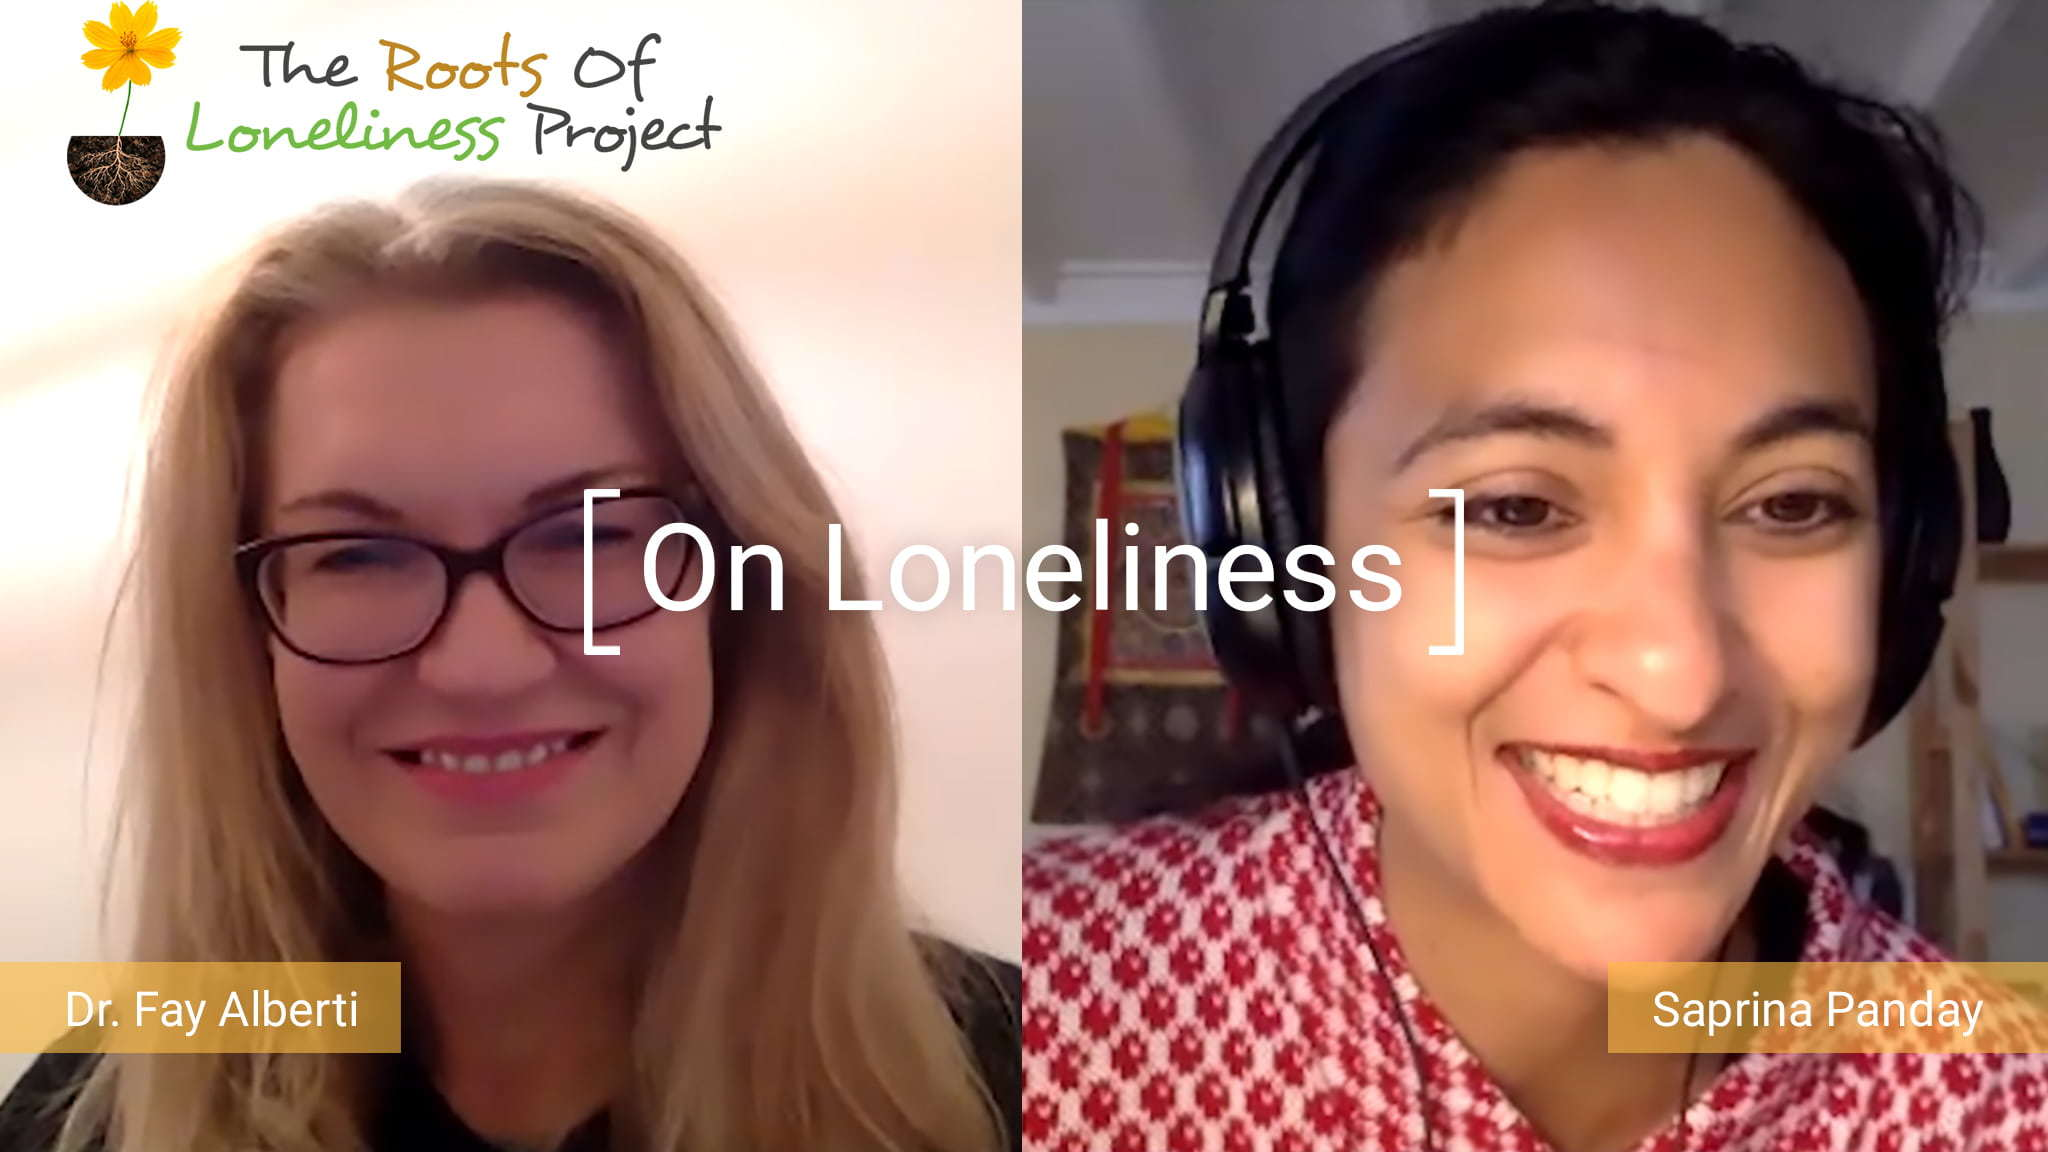 Screenshot Of A Video Interview With Dr. Fay Alberti And Saprina Panday For Women's Health Interactive Discussing The Topic Of Loneliness